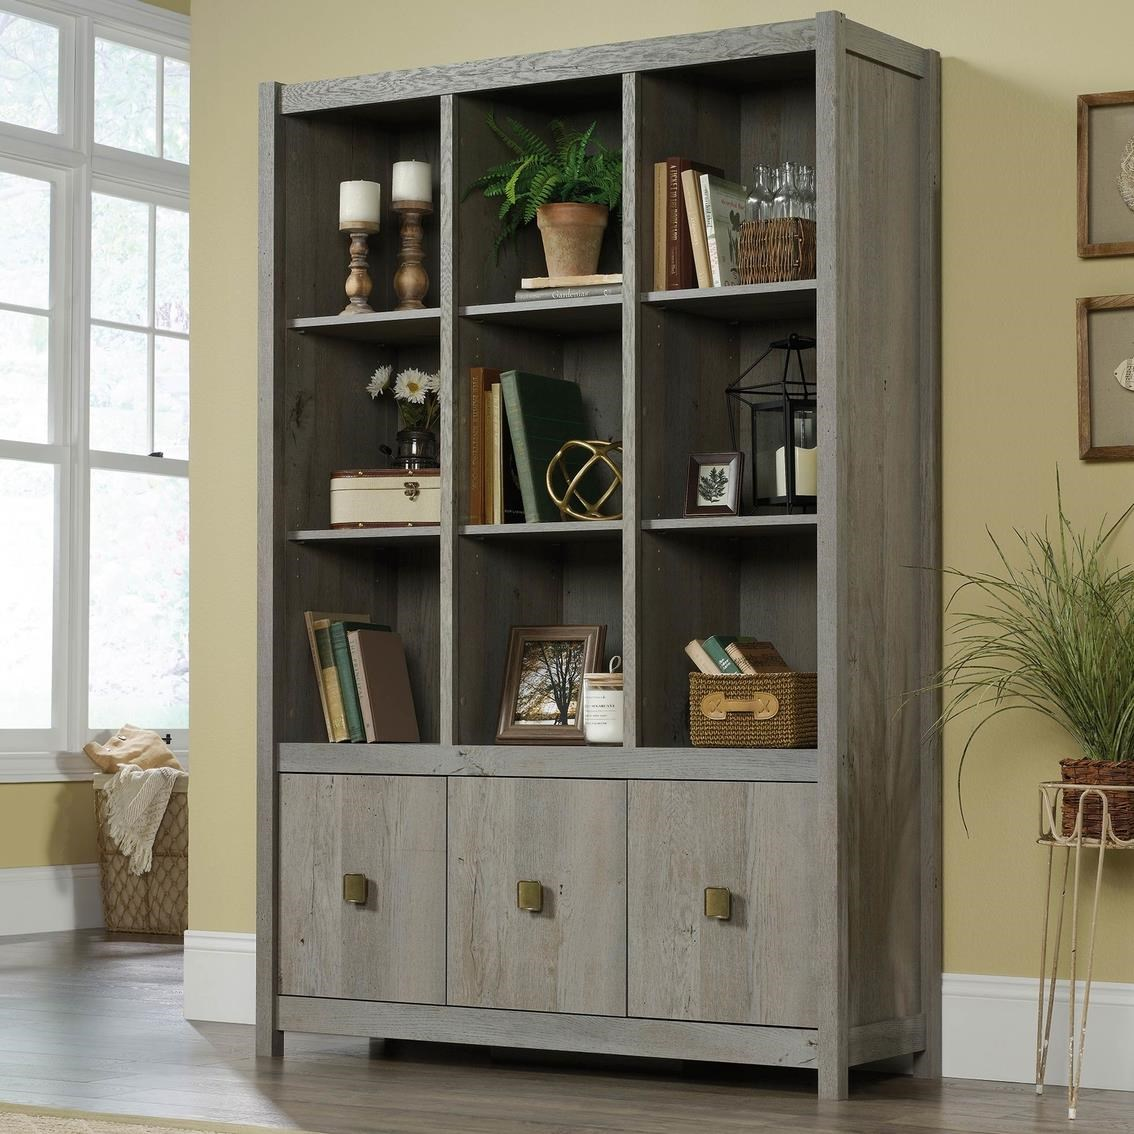 Cannery Bridge Storage Wall by Sauder at Darvin Furniture